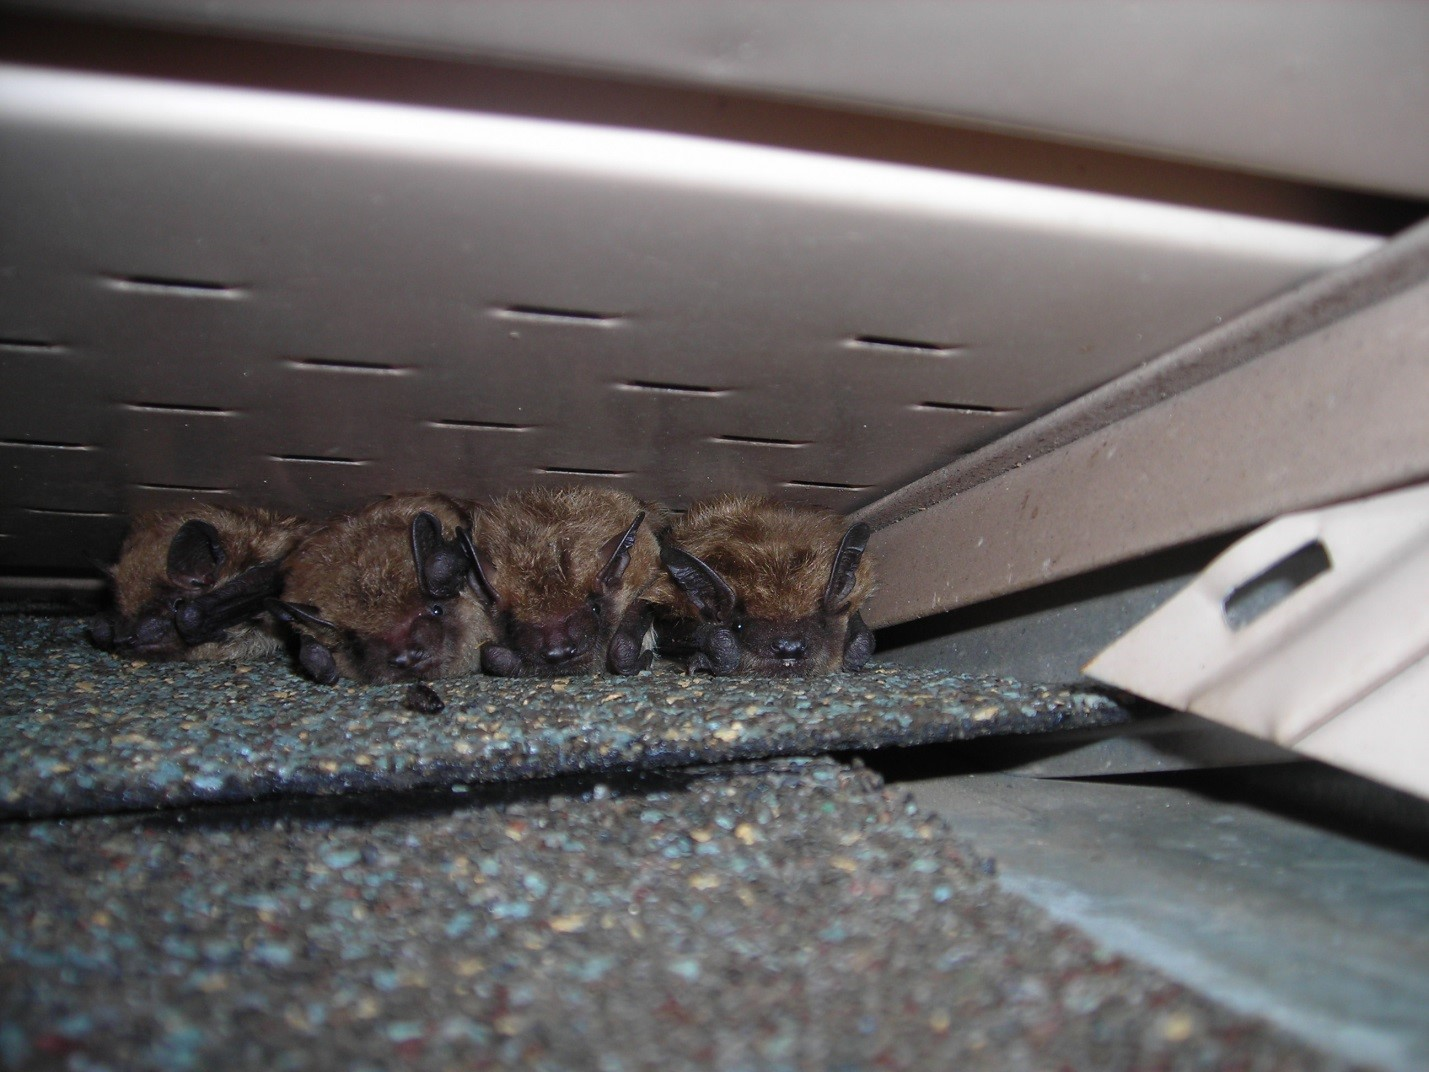 bats-huddled-together-on-a-roof